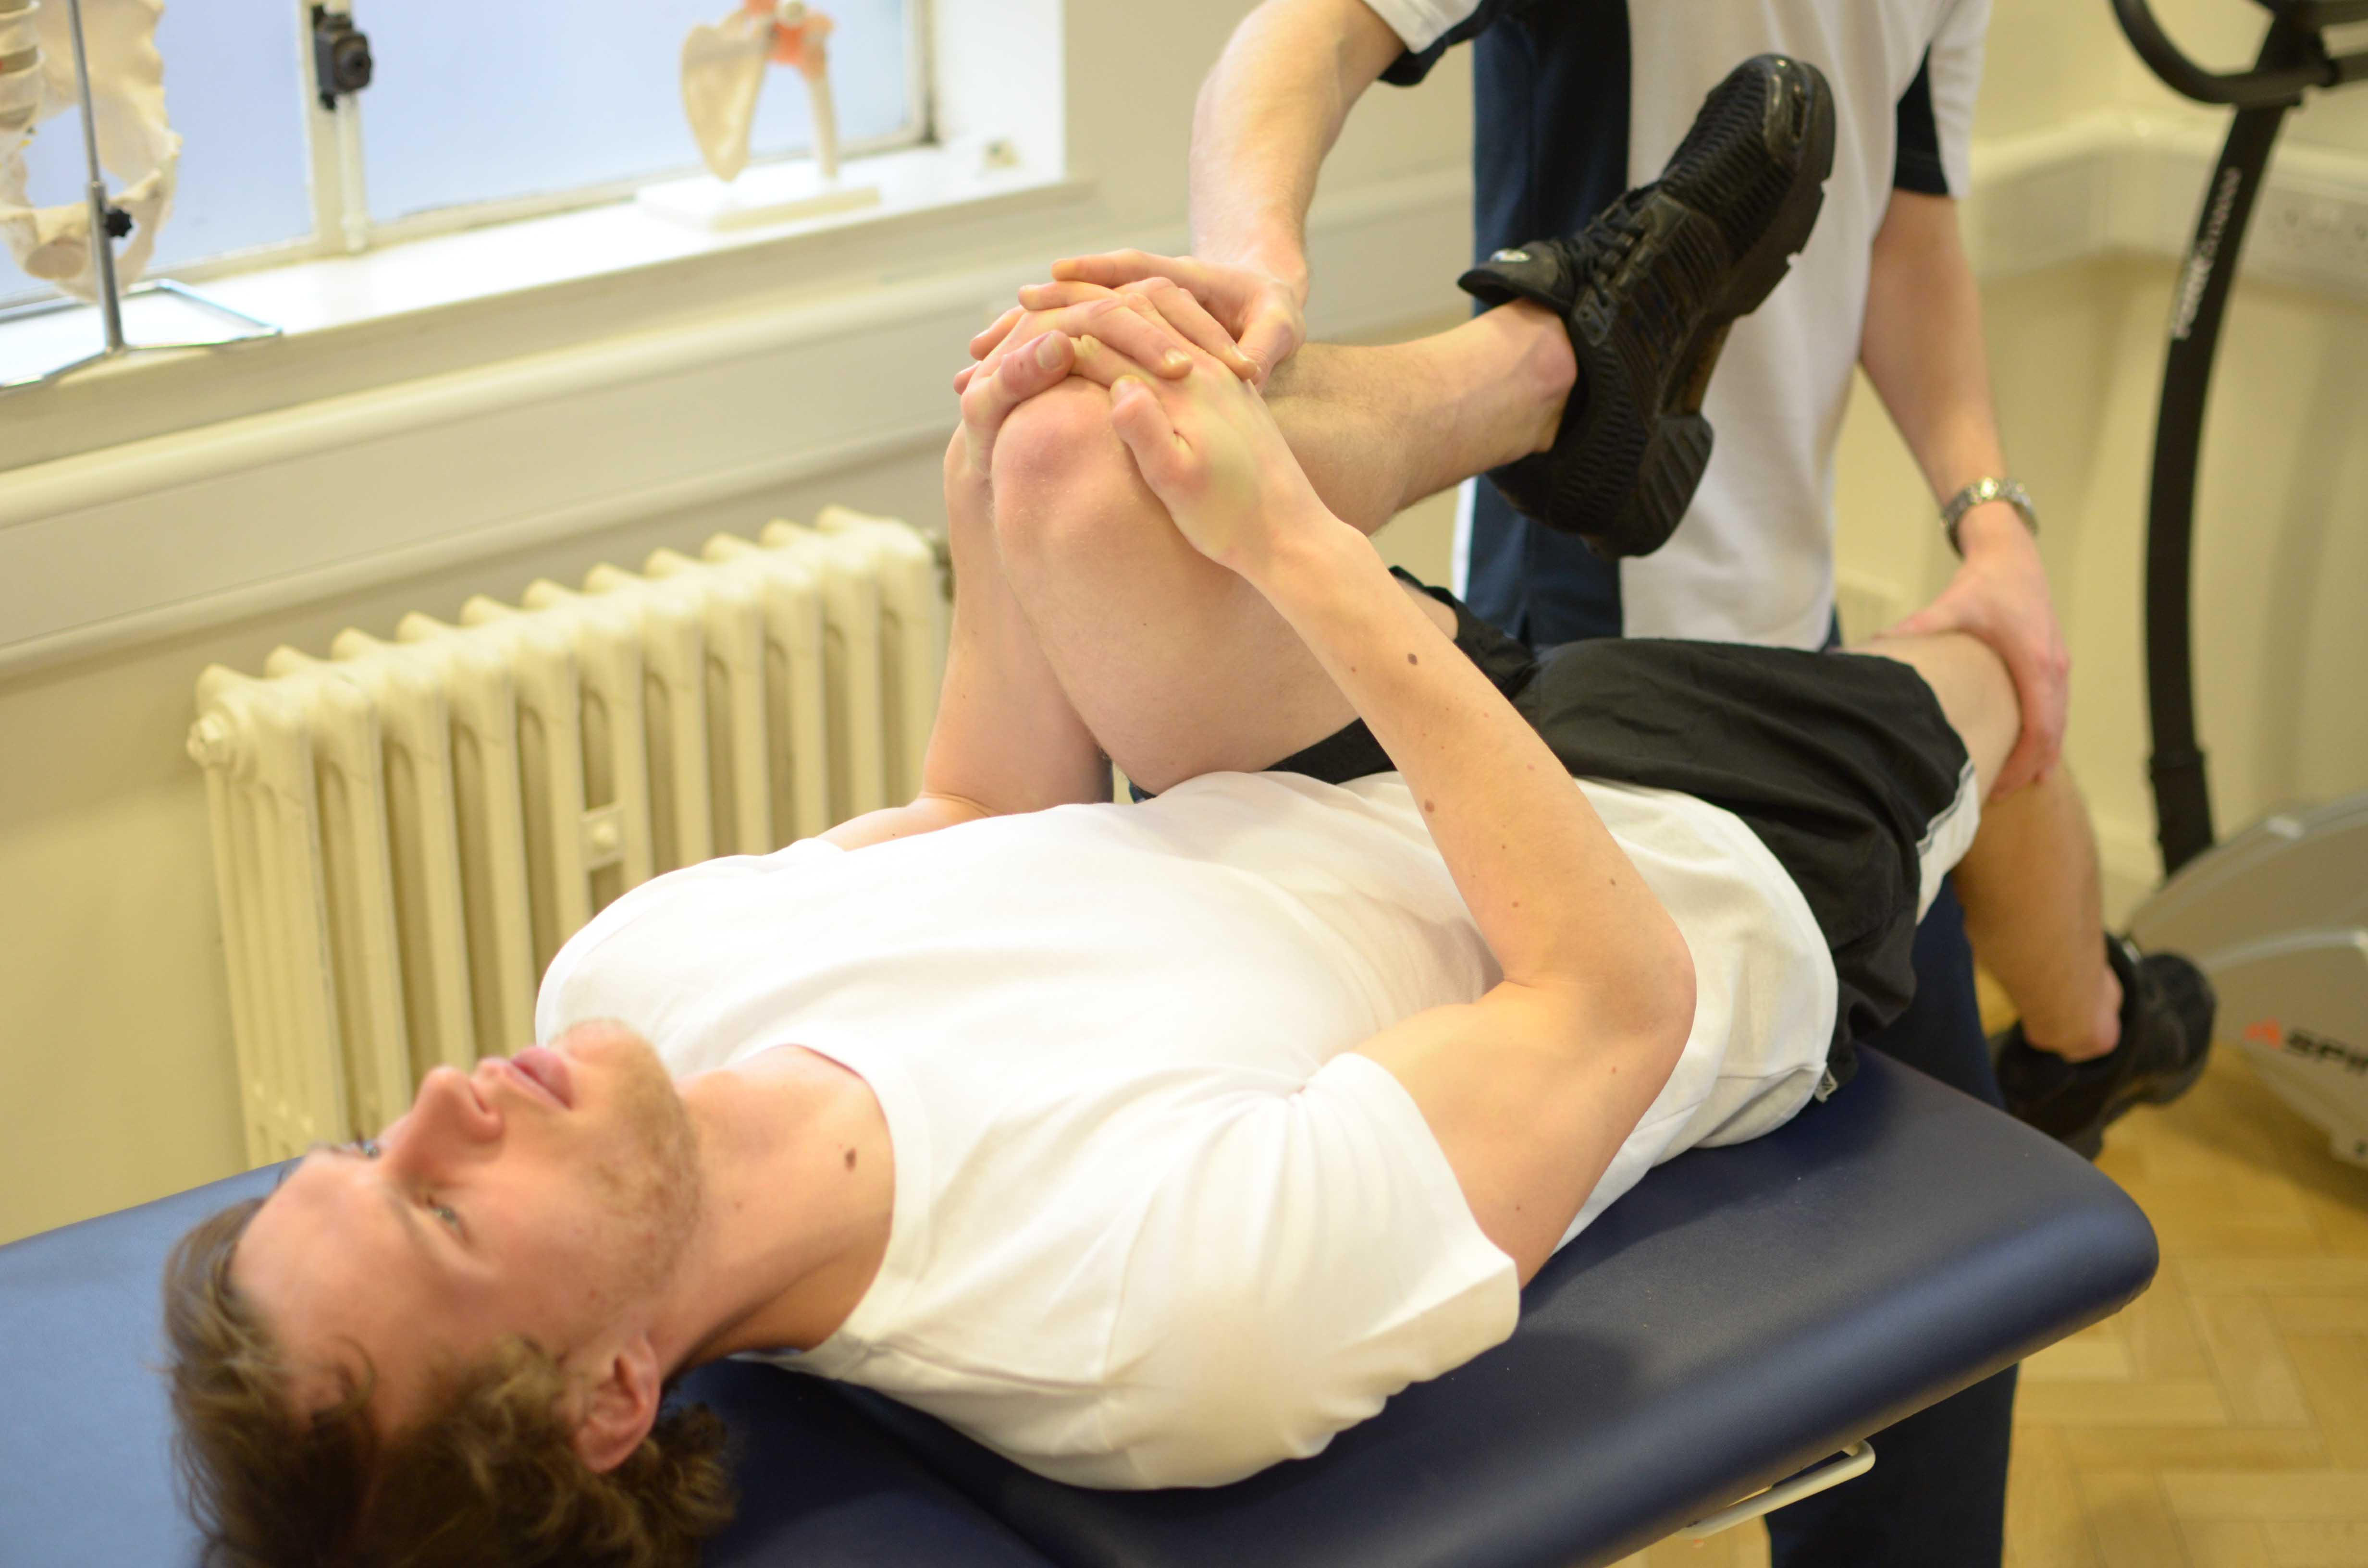 Active stretches assisted by the physiotherapist to lengthen and stabalise muscle tissue